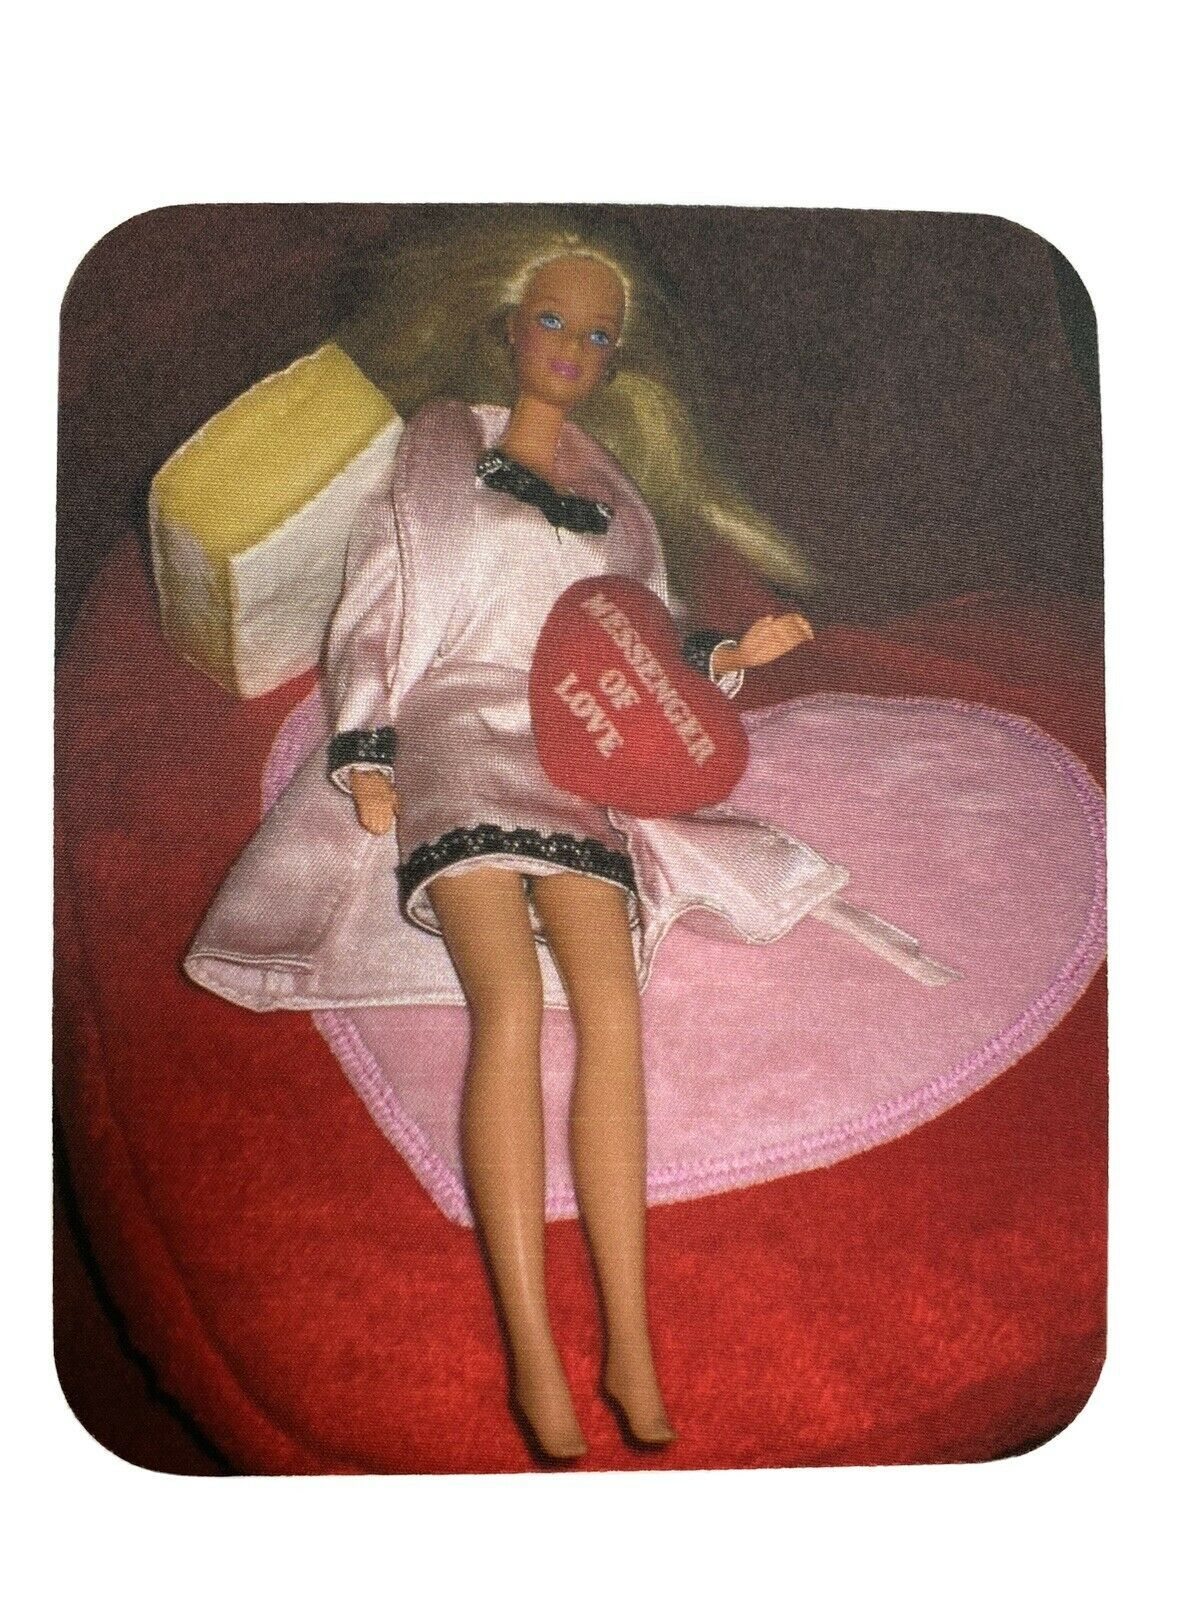 Primary image for Vintage Barbie Computer Mouse Pad 9 1/4x8